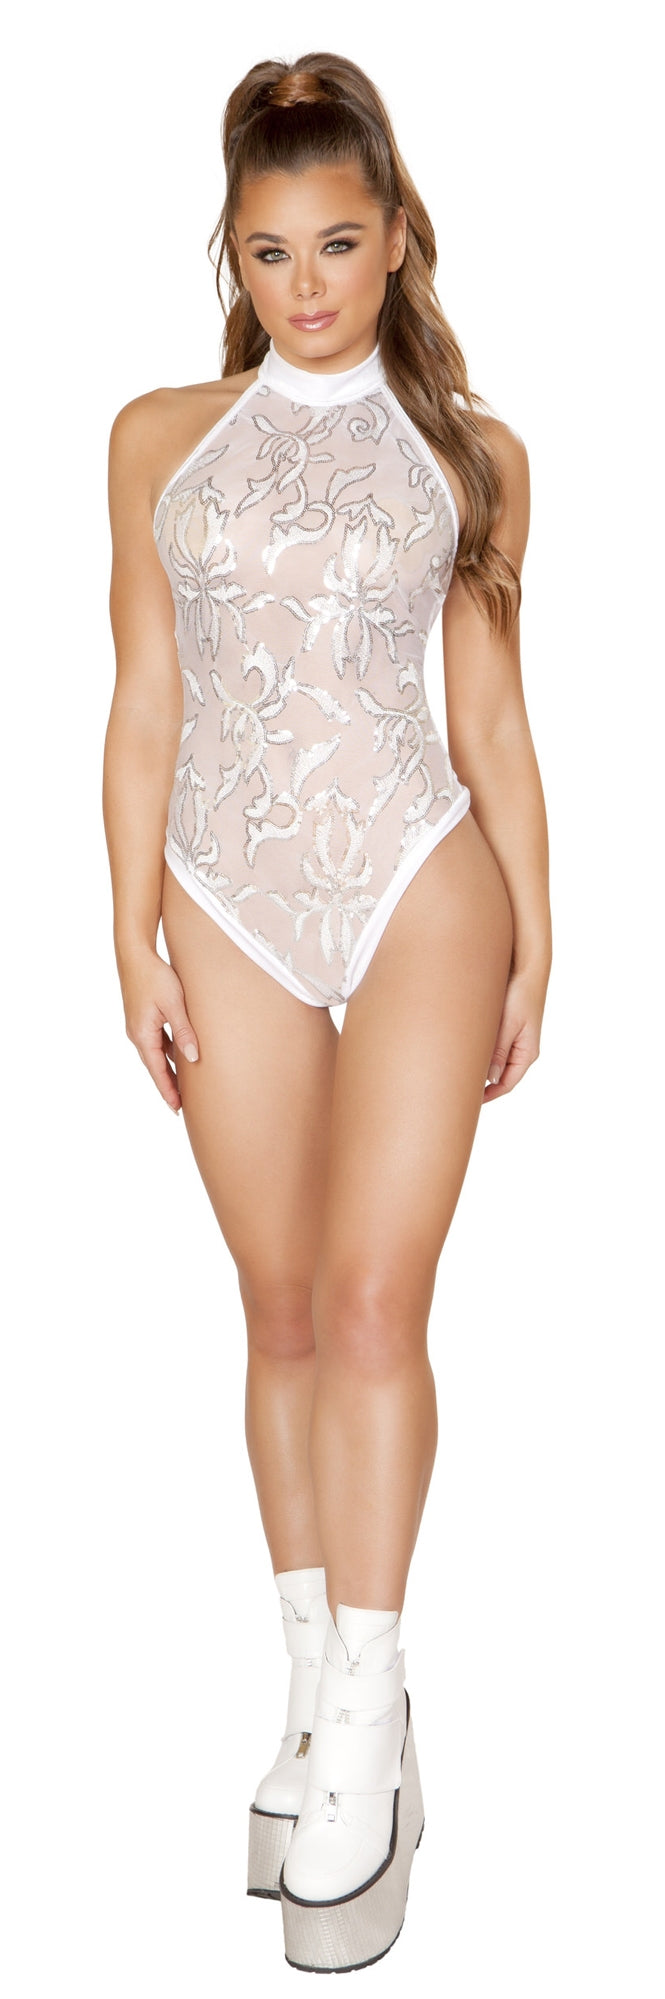 RM-3582 One piece front sheer and sequin high neck romper